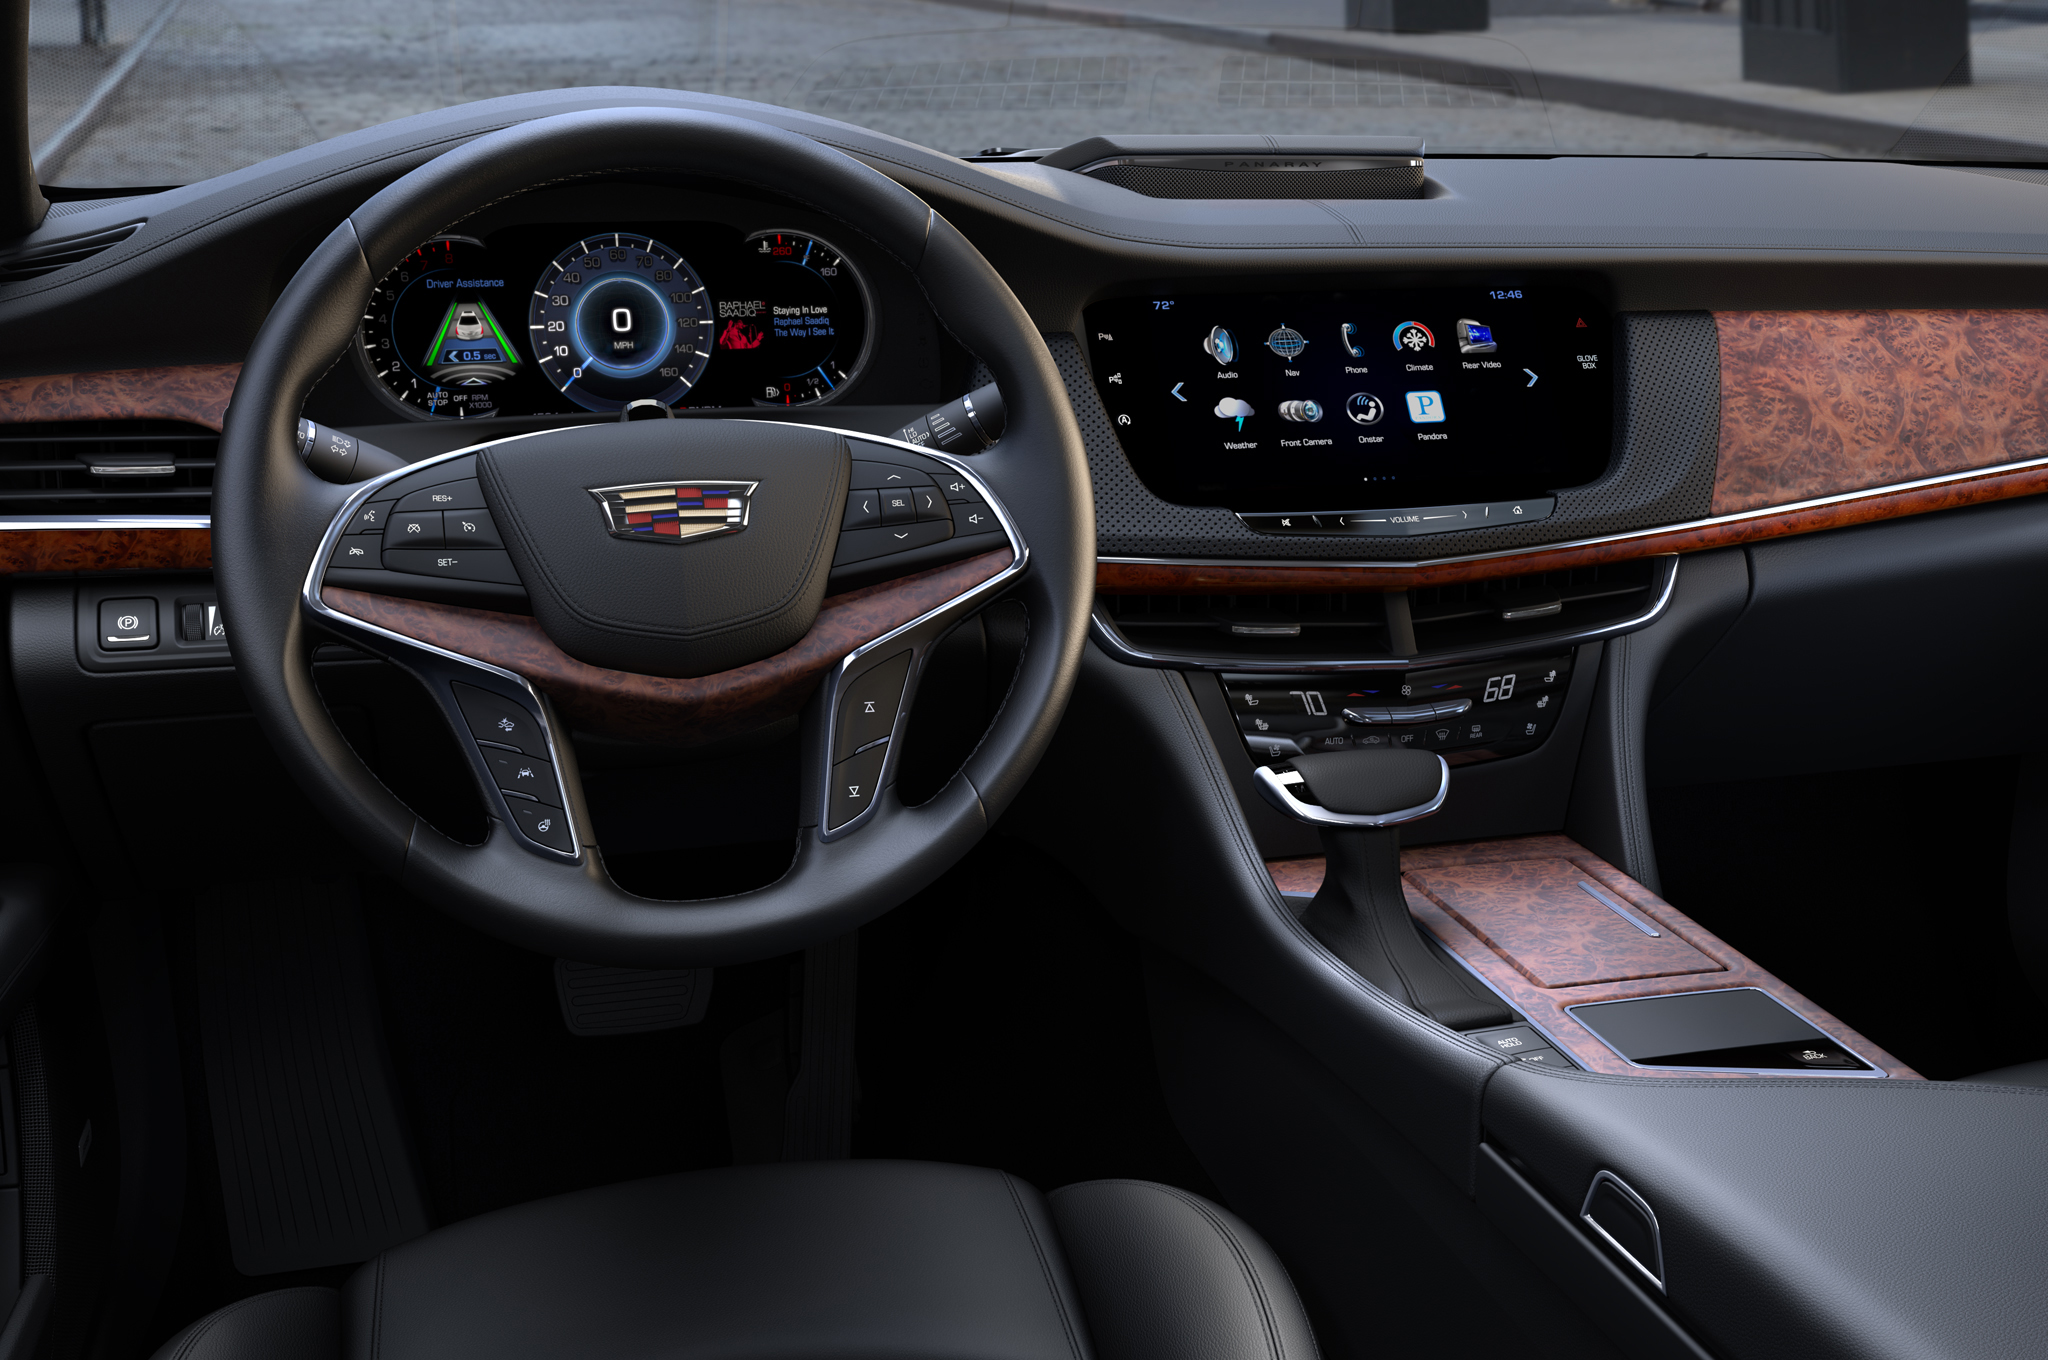 Cadillac is Planning Its Own Car Sharing Service Called Book - GM Inside News